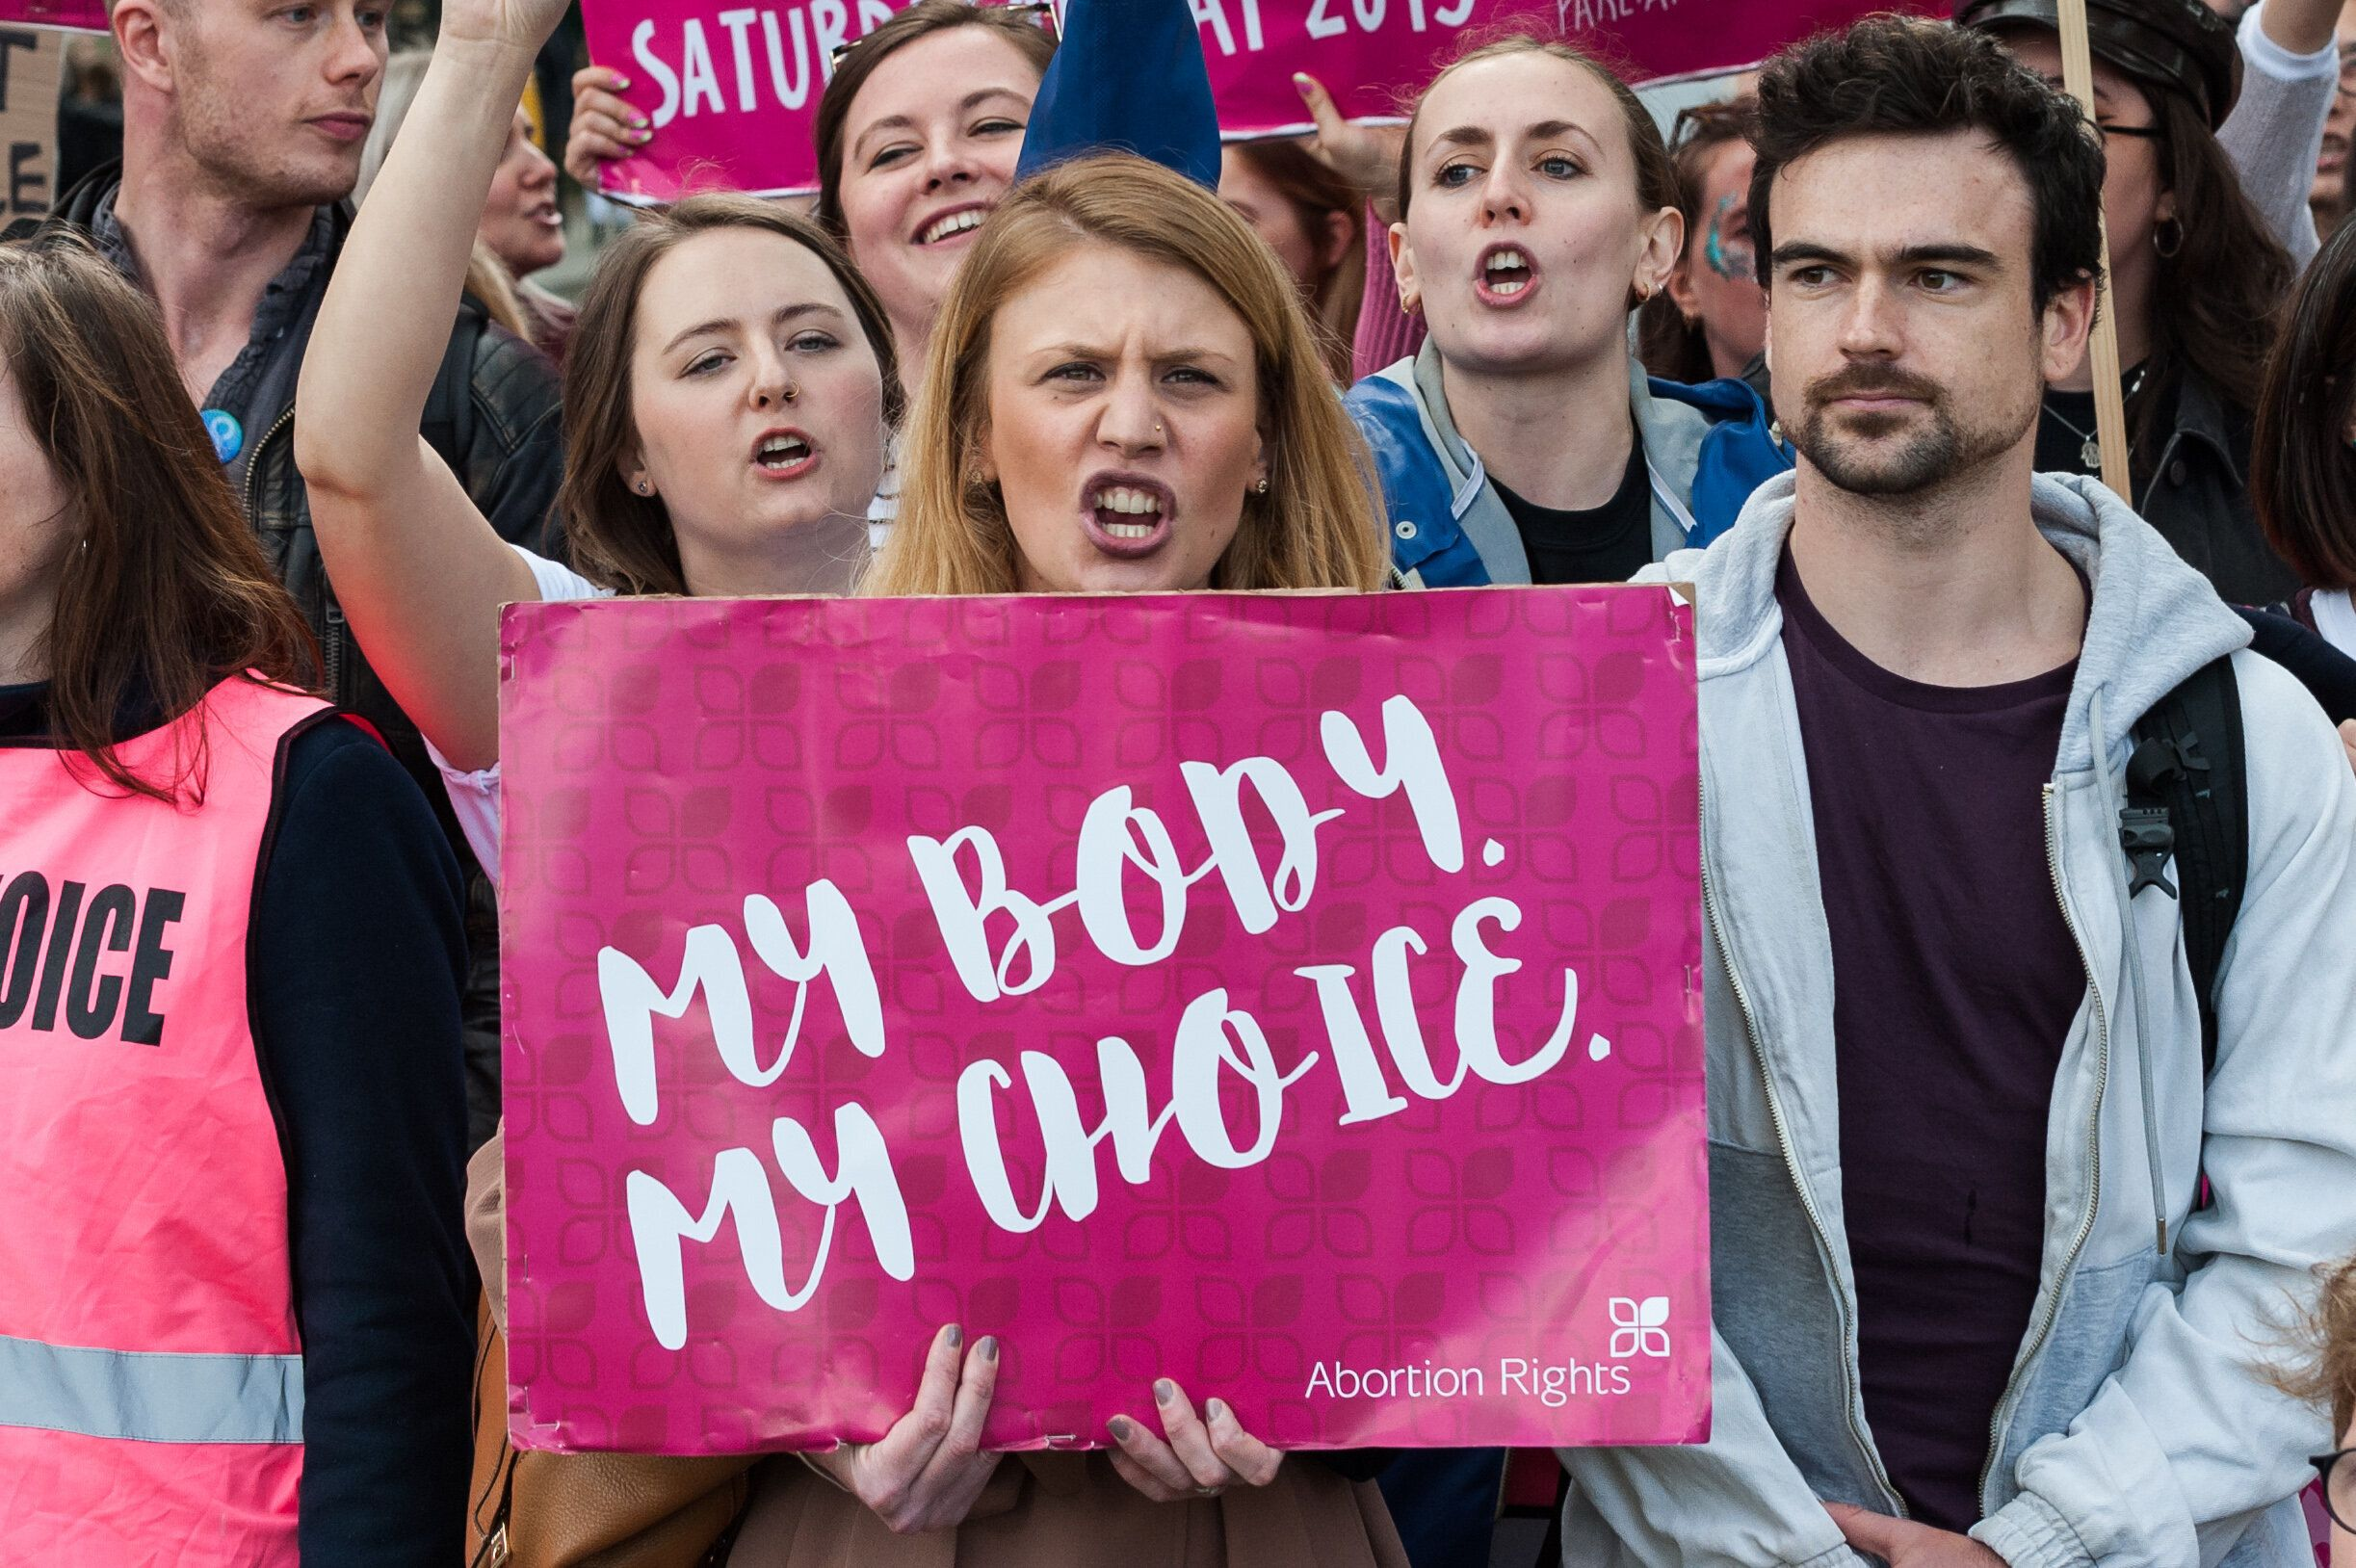 LONDON, UNITED KINGDOM - MAY 11: Pro-choice supporters stage a demonstration in Parliament Square to campaign for women's reproductive rights, legalisation of abortion in Northern Ireland and it's decriminalisation in the UK on 11 May, 2019 in London, England. The demonstration is a counter-protest to the anti-abortion 'March for Life'  taking place alongside. (Photo credit should read Wiktor Szymanowicz / Barcroft Media via Getty Images)